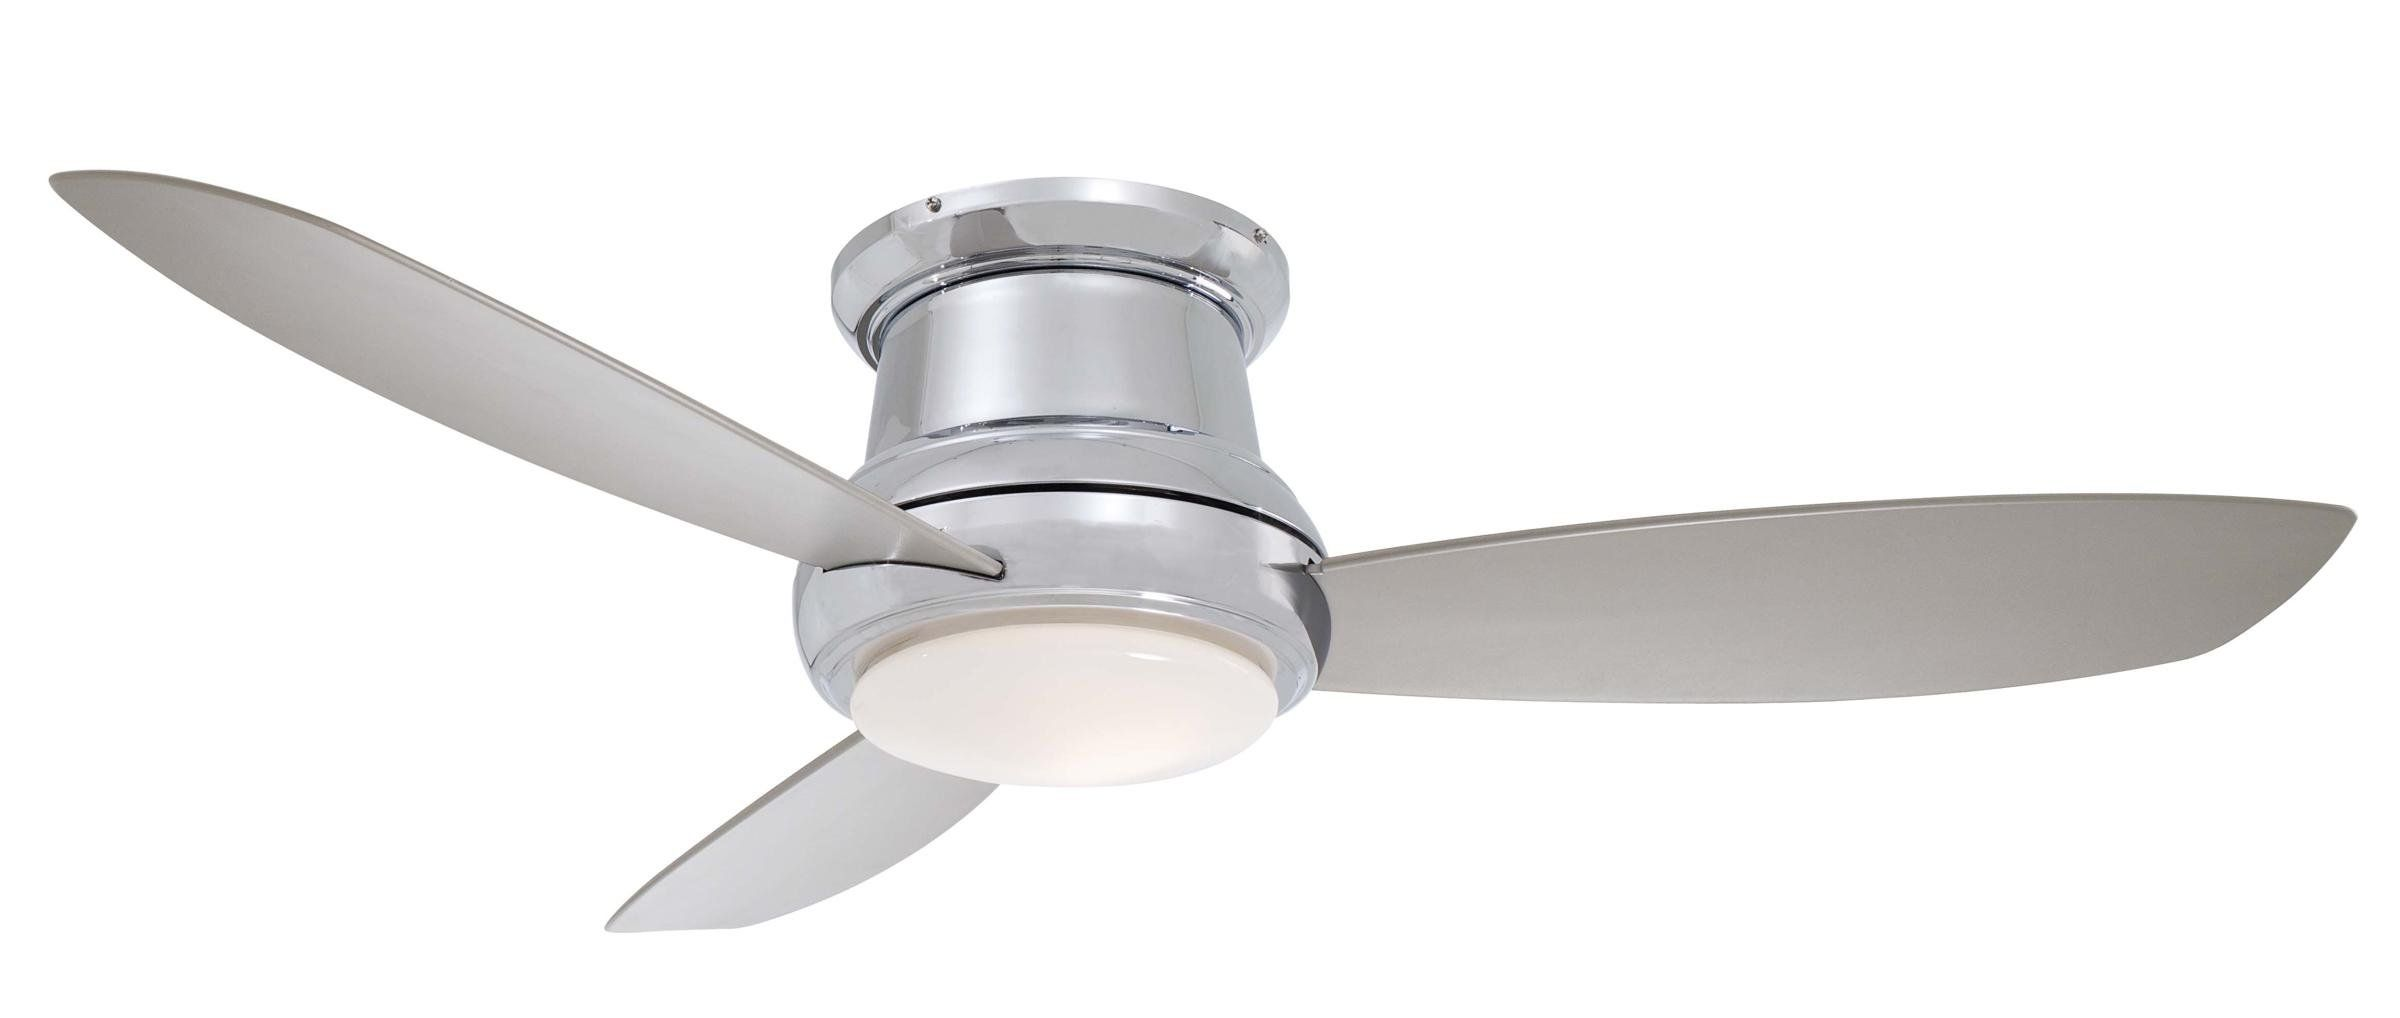 Minka Aire F518 Wh 44 Inch Concept Ii Flush Mount Ceiling Fan White With White Blades Amazon C Ceiling Fan Flush Mount Ceiling Fan Ceiling Fan With Remote